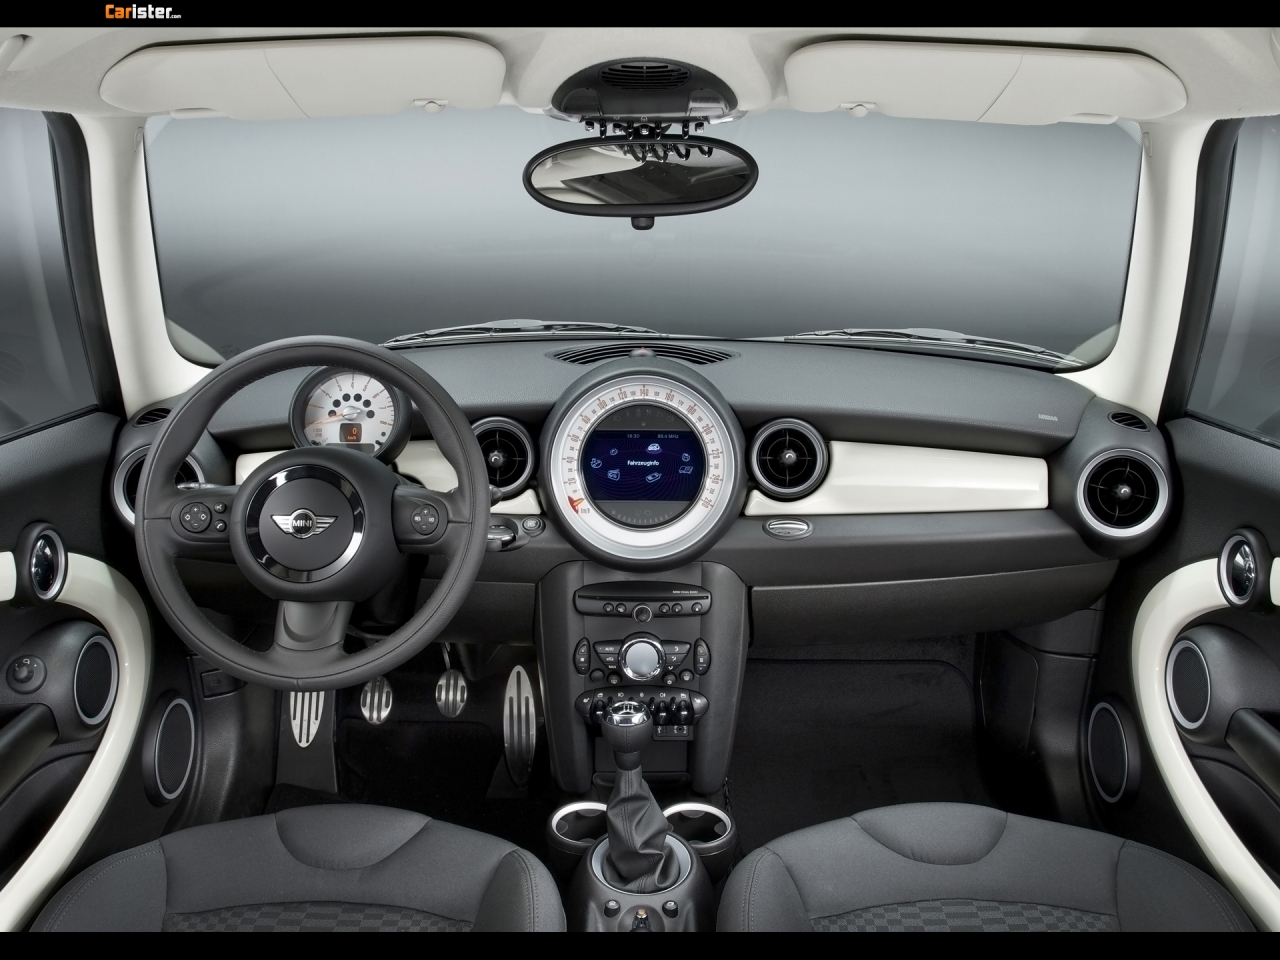 Mini Clubman Hyde Park 2012 - Photo 10 - Taille: 1280x960